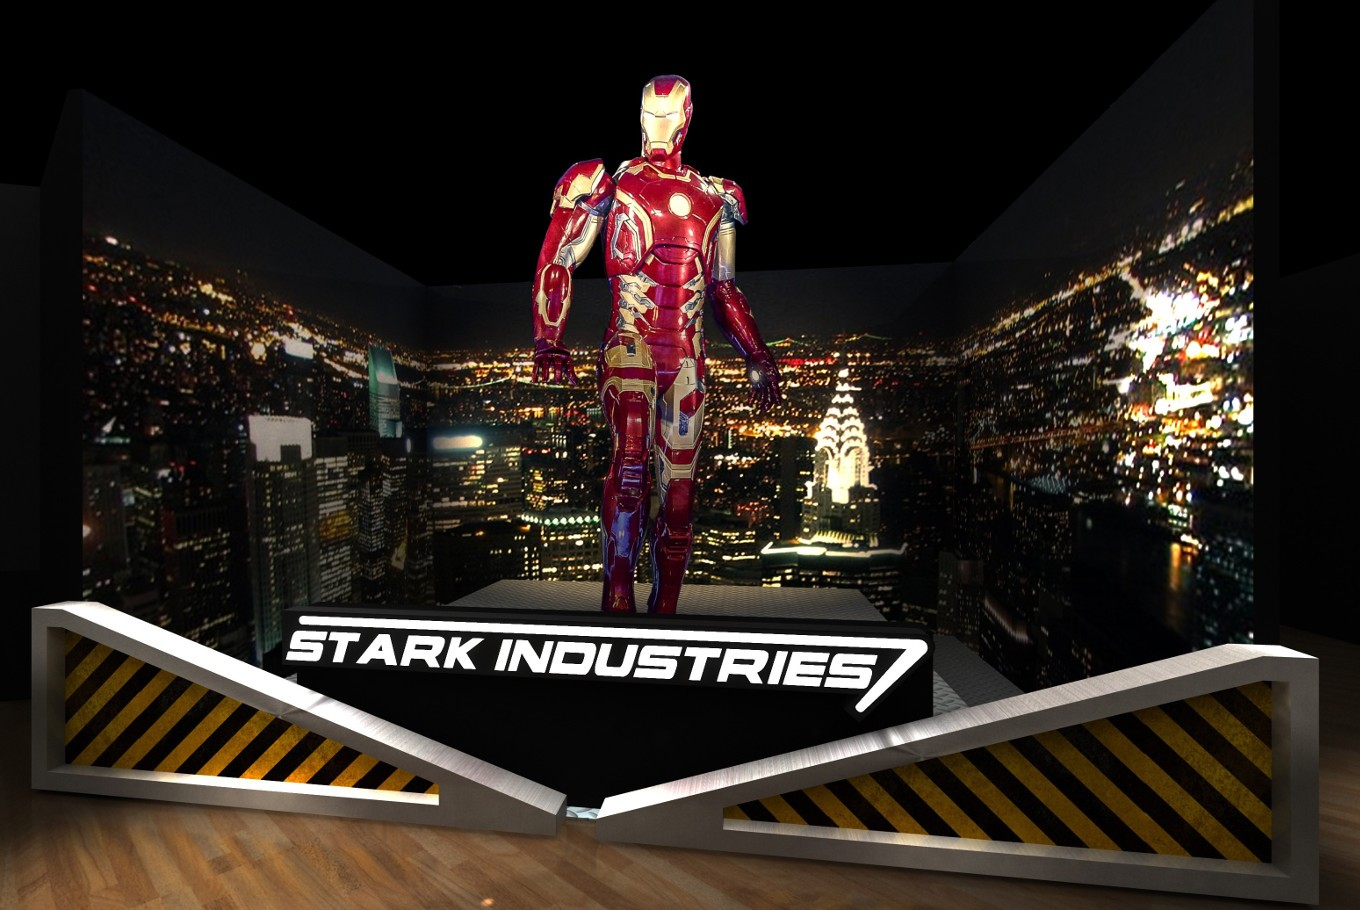 Marvel Experience attraction comes to Bangkok